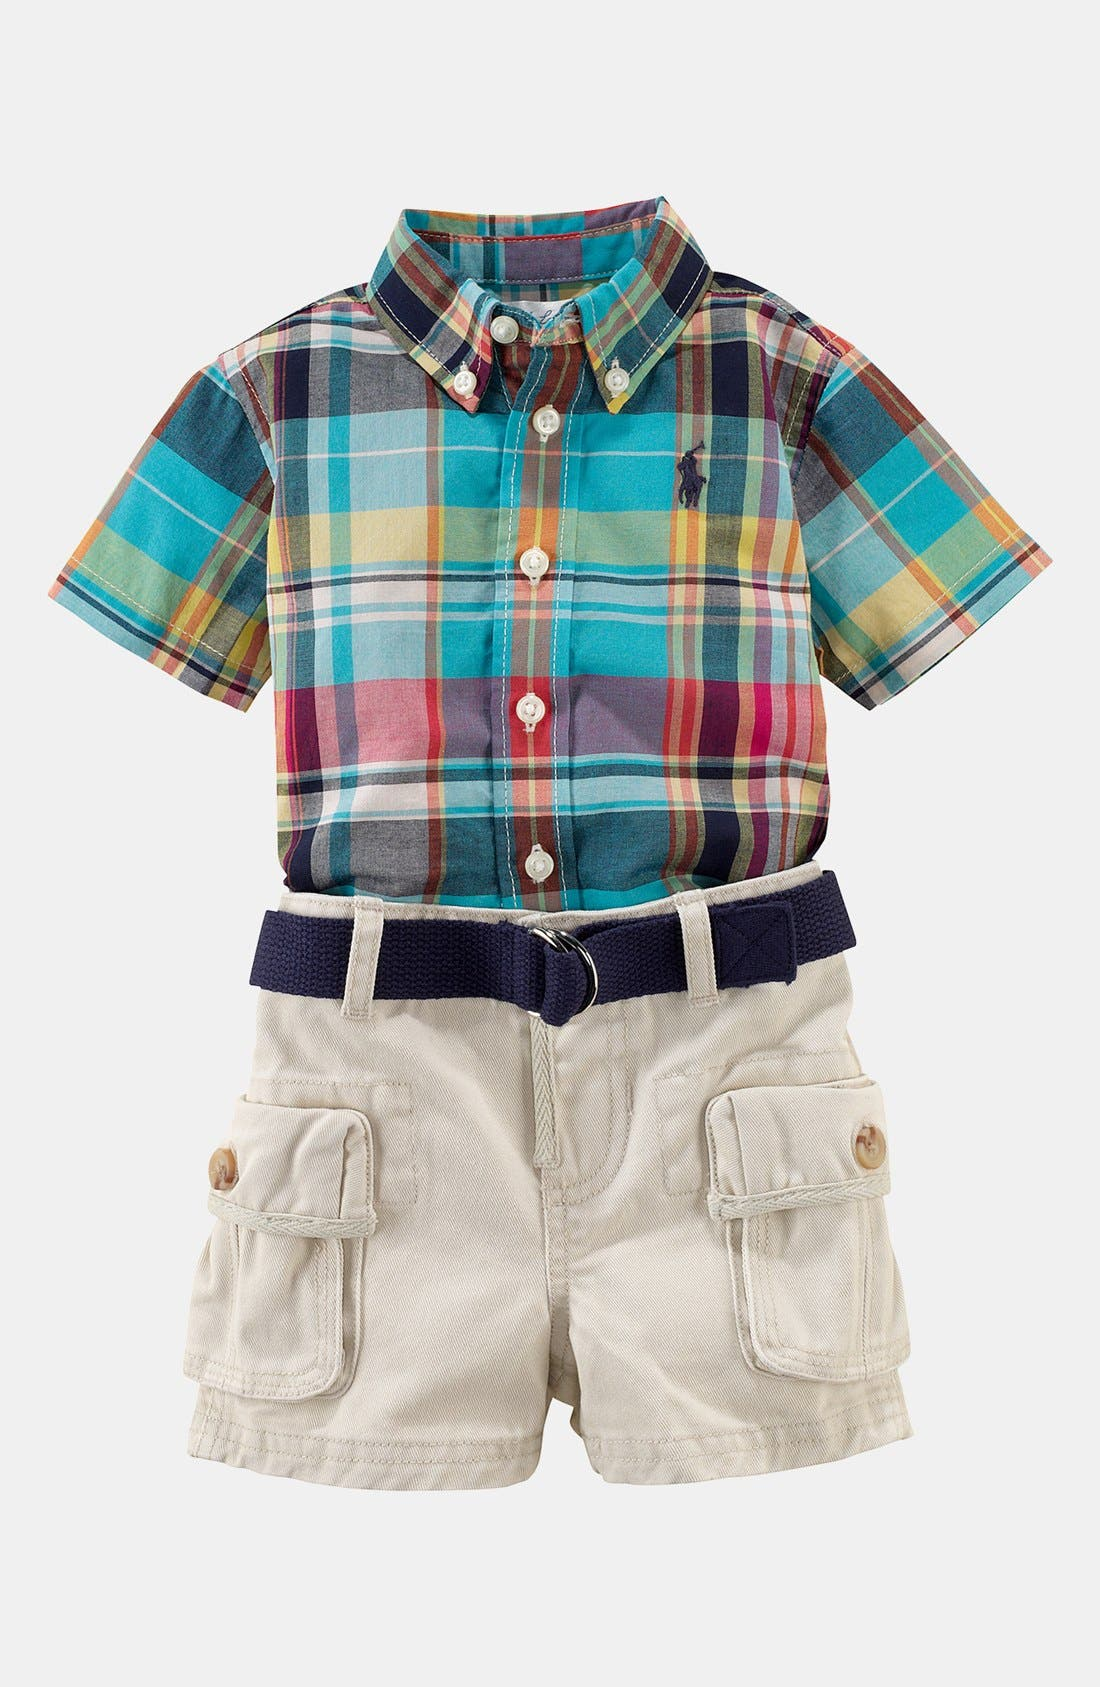 Alternate Image 1 Selected - Ralph Lauren Plaid Shirt & Shorts (Baby)